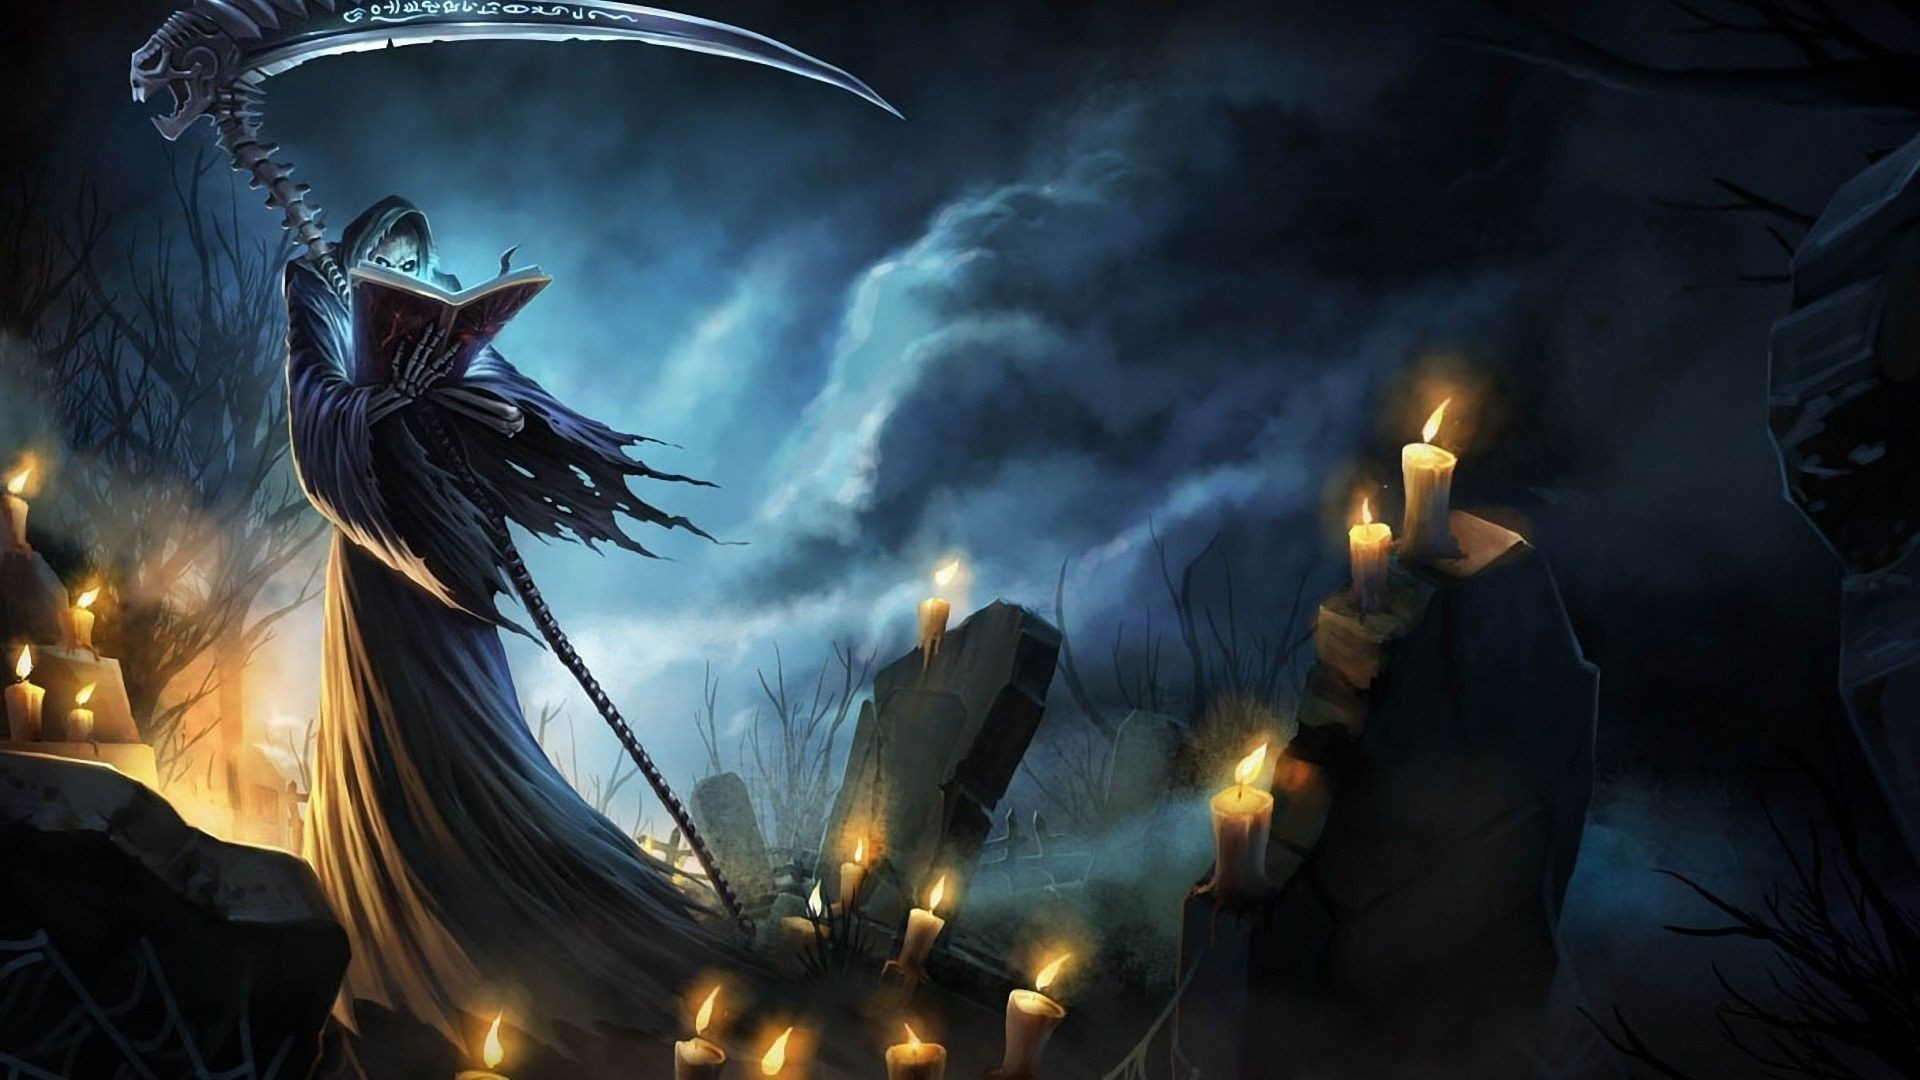 Res: 1920x1080,  Grim Reaper in the cemetery Fantasy HD desktop wallpaper,  Cemetery wallpaper, Grim Reaper